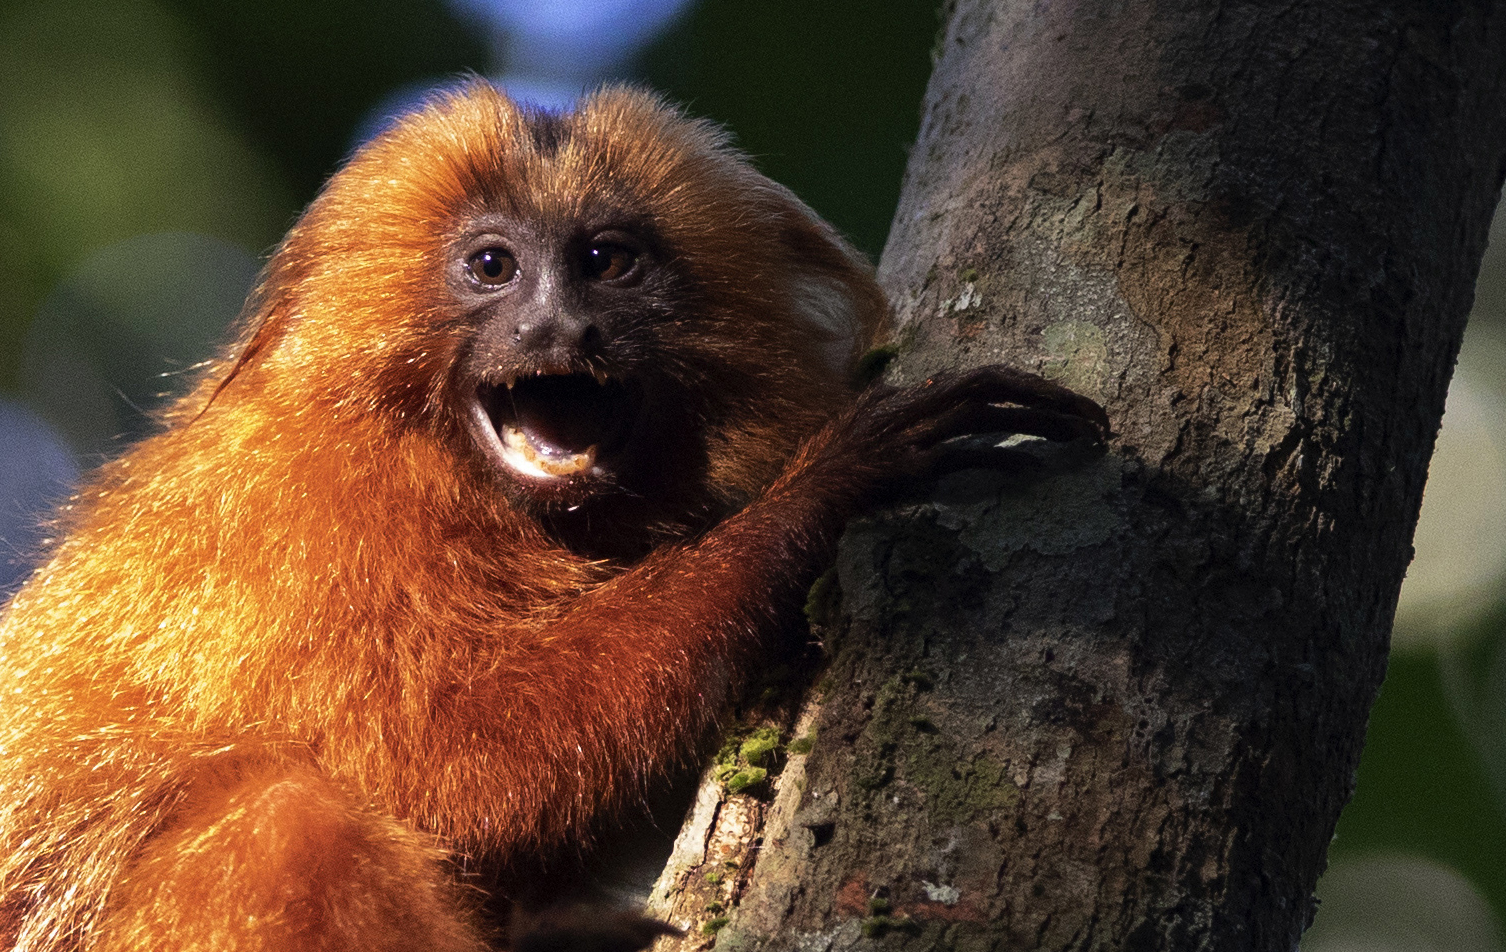 A Golden Lion Tamarin holds on to a tree in the Atlantic Forest region of Silva Jardim in Rio de Janeiro, Brazil on Aug. 6, 2020. (AP Photo/Silvia Izquierdo)